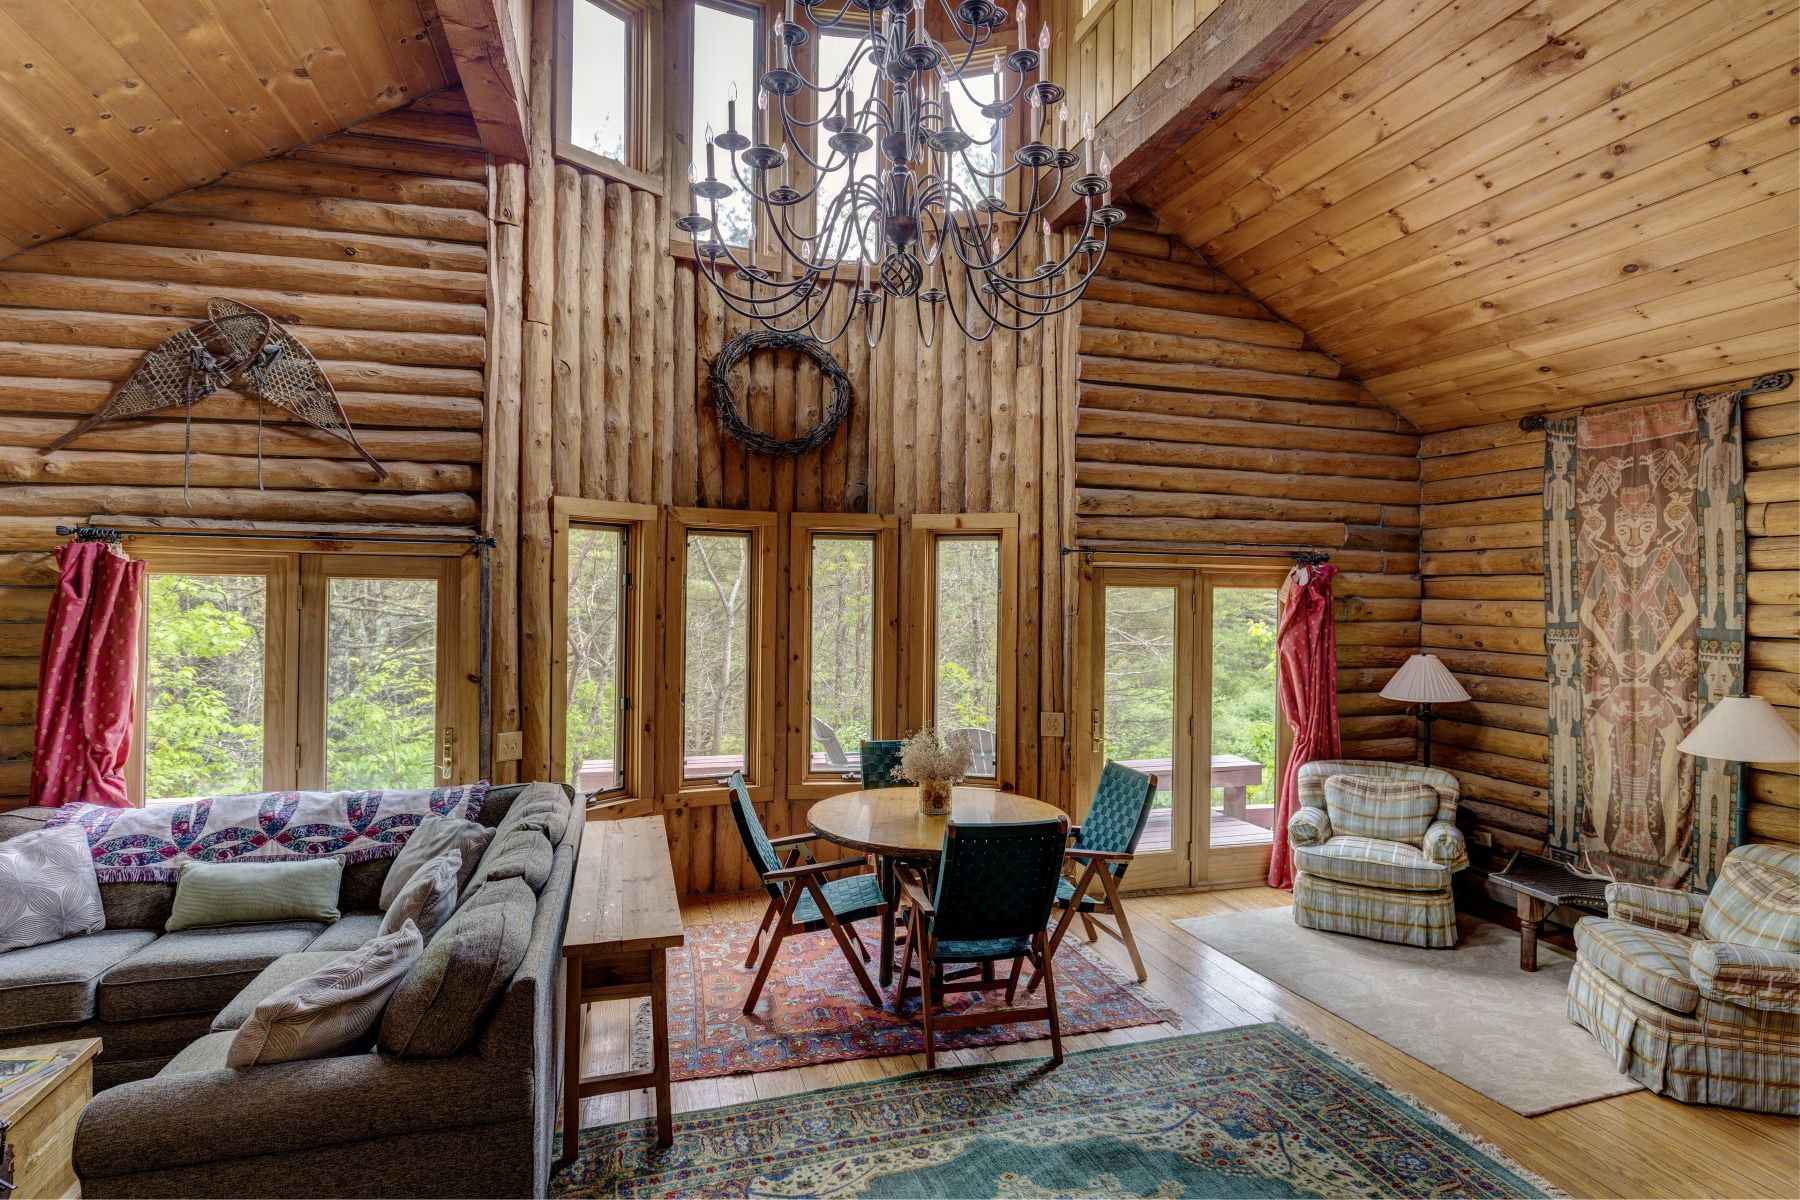 Single Family Homes for Sale at The Hartland Preserve 11 Draper Rd Hartland, Vermont 05048 United States